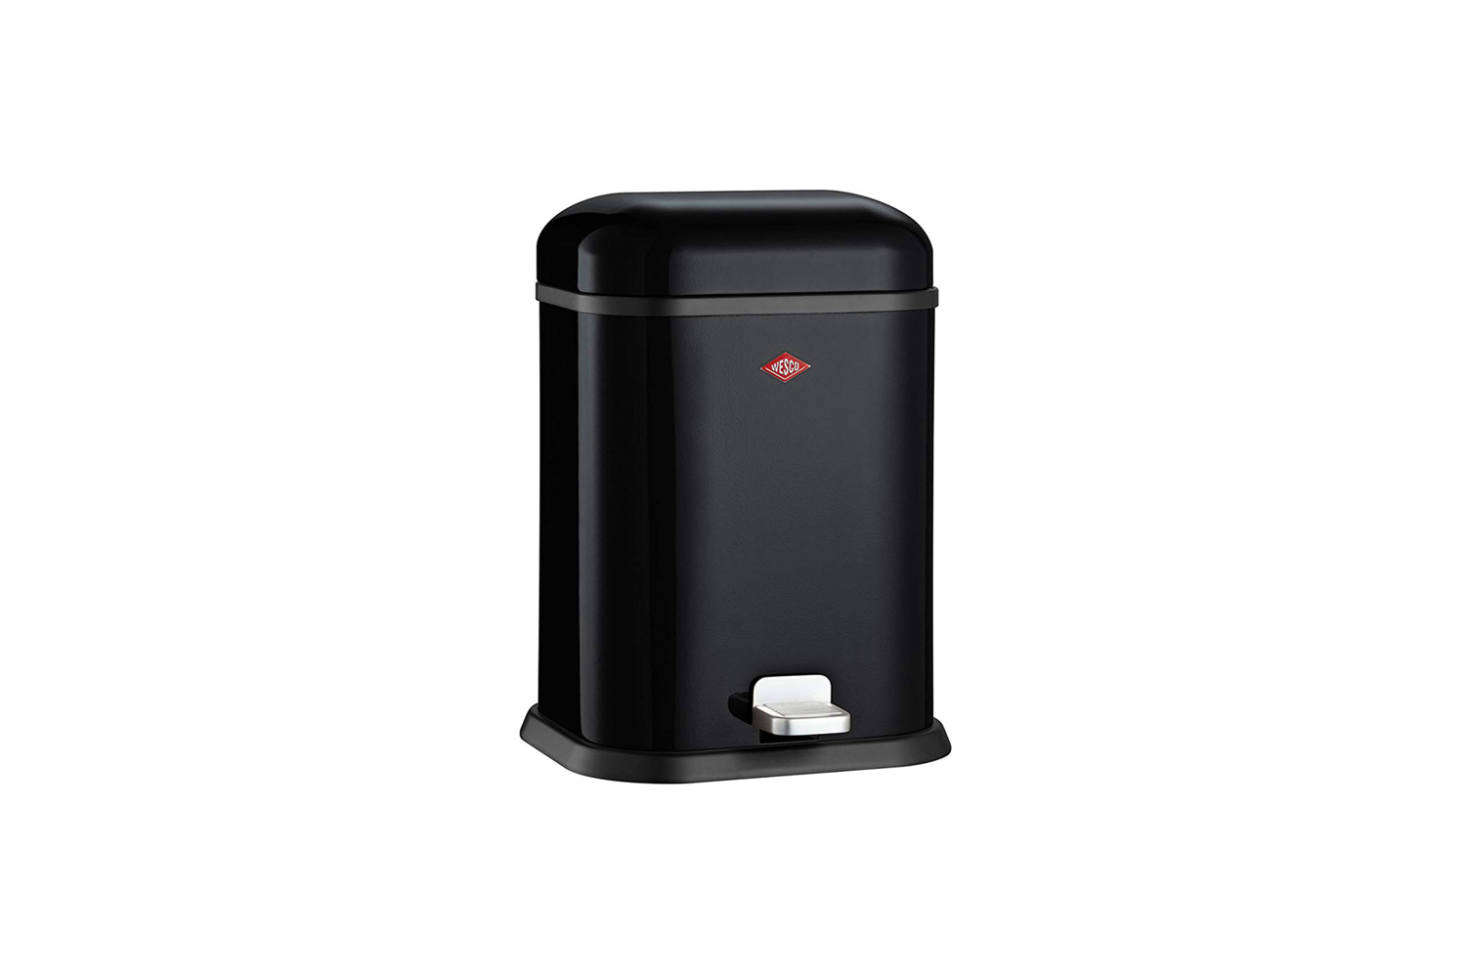 One of our favorite small trash bins is the Wesco Single Boy German-Designed Step Trash Can that comes in six different powder coated colors; $123.99 on Amazon Prime.